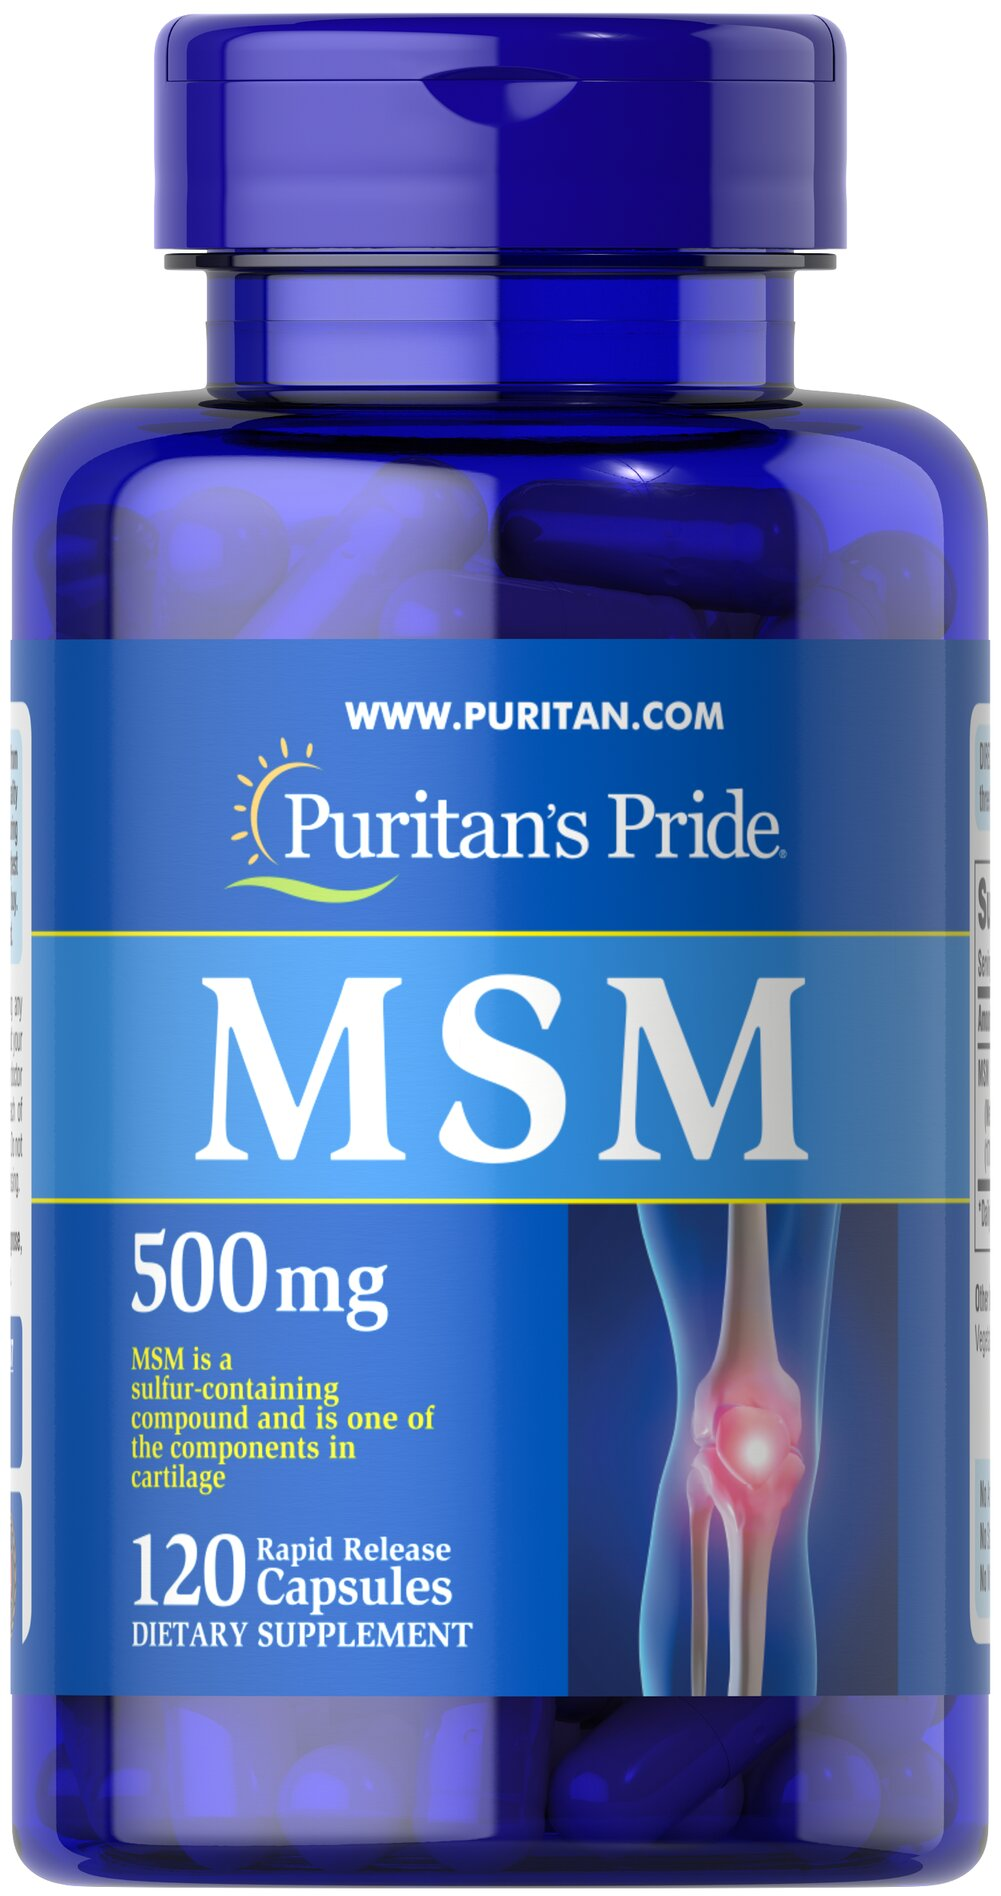 MSM 500 mg <p><b>Methylsulfonylmethane (MSM)</b> is a natural source of sulfur, one of the major building blocks of glycosaminoglycans.** Glycosaminoglycans are key structural components in cartilage and play an important role in the maintenance of joint cartilage. ** </p> 120 Capsules 500 mg $10.99